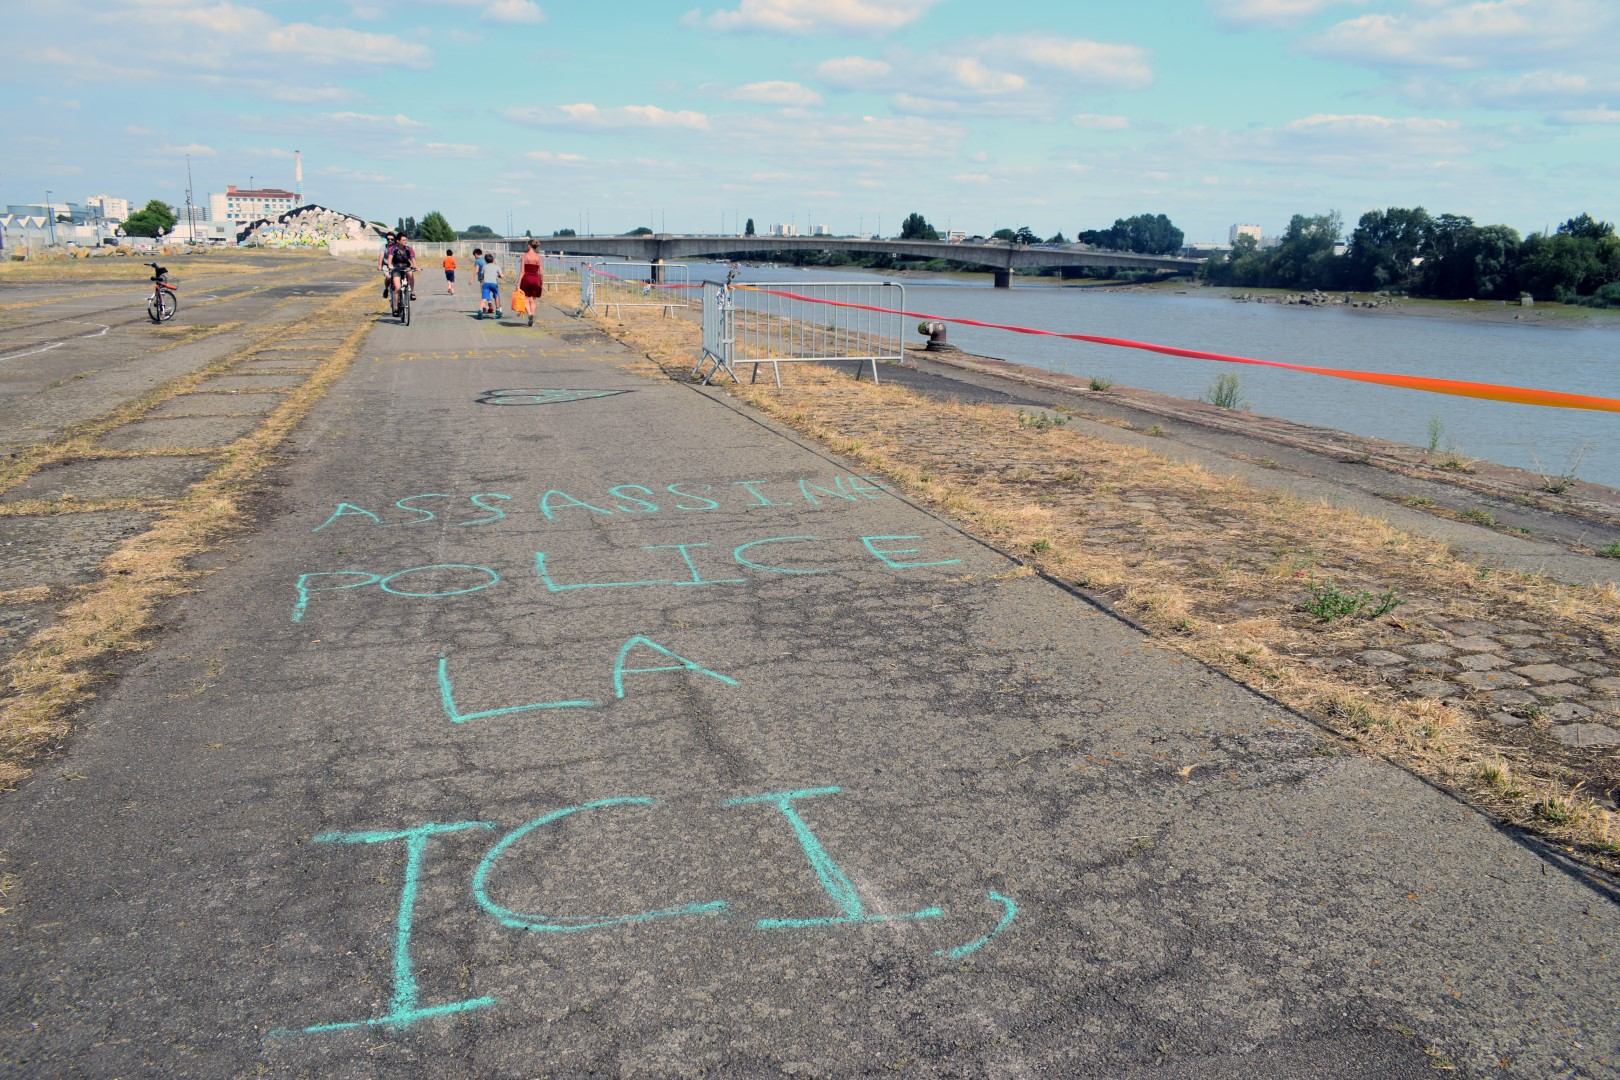 Île de Nantes, where the festival and police brutality took place on June 21